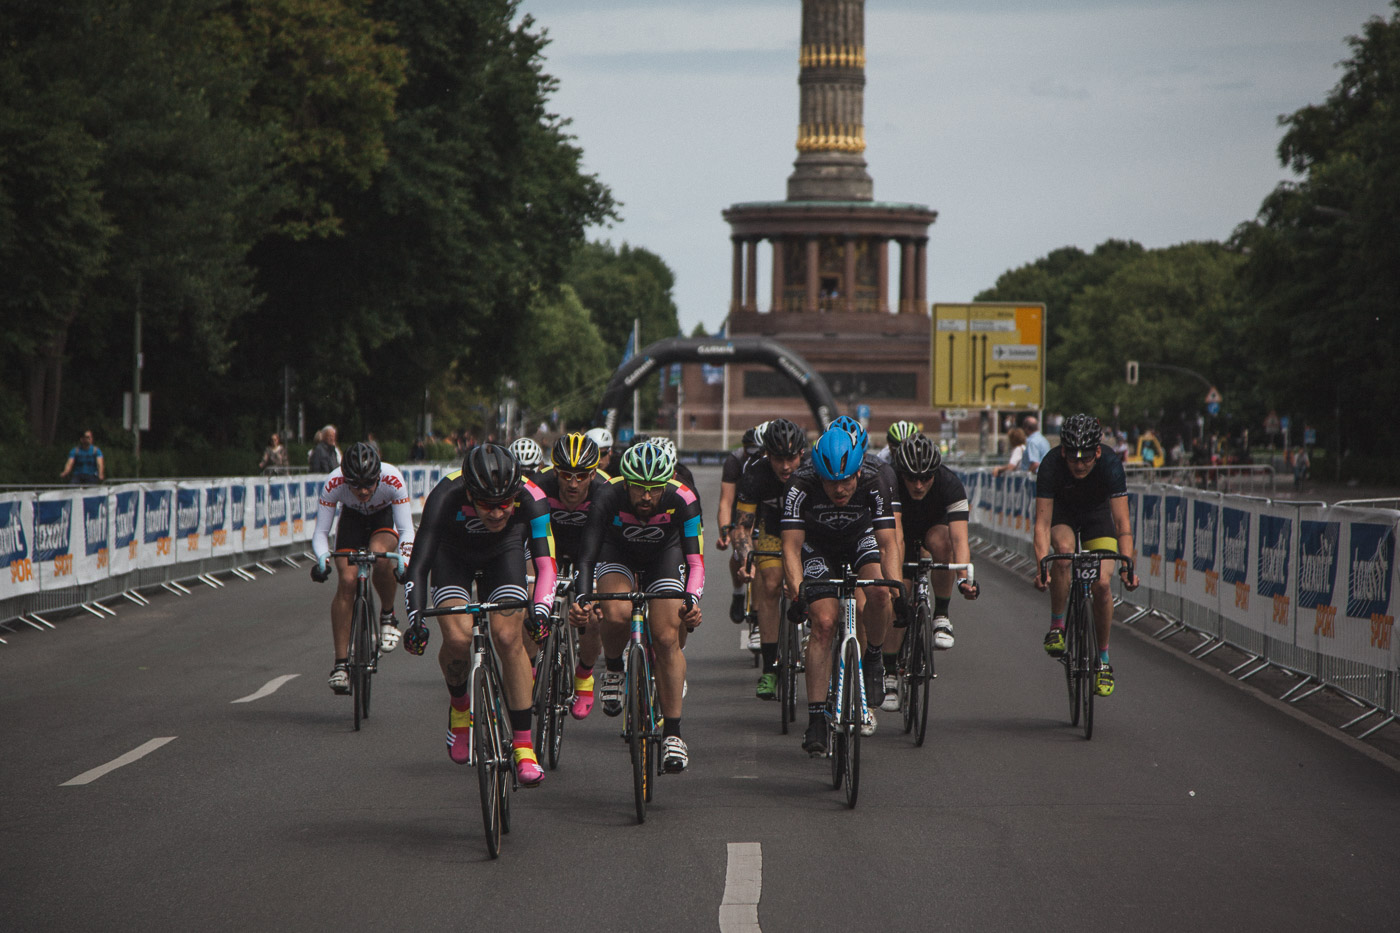 RAD RACE Fixed42 World Championship, Berlin May31st, Pic by stefanhaehnel.com